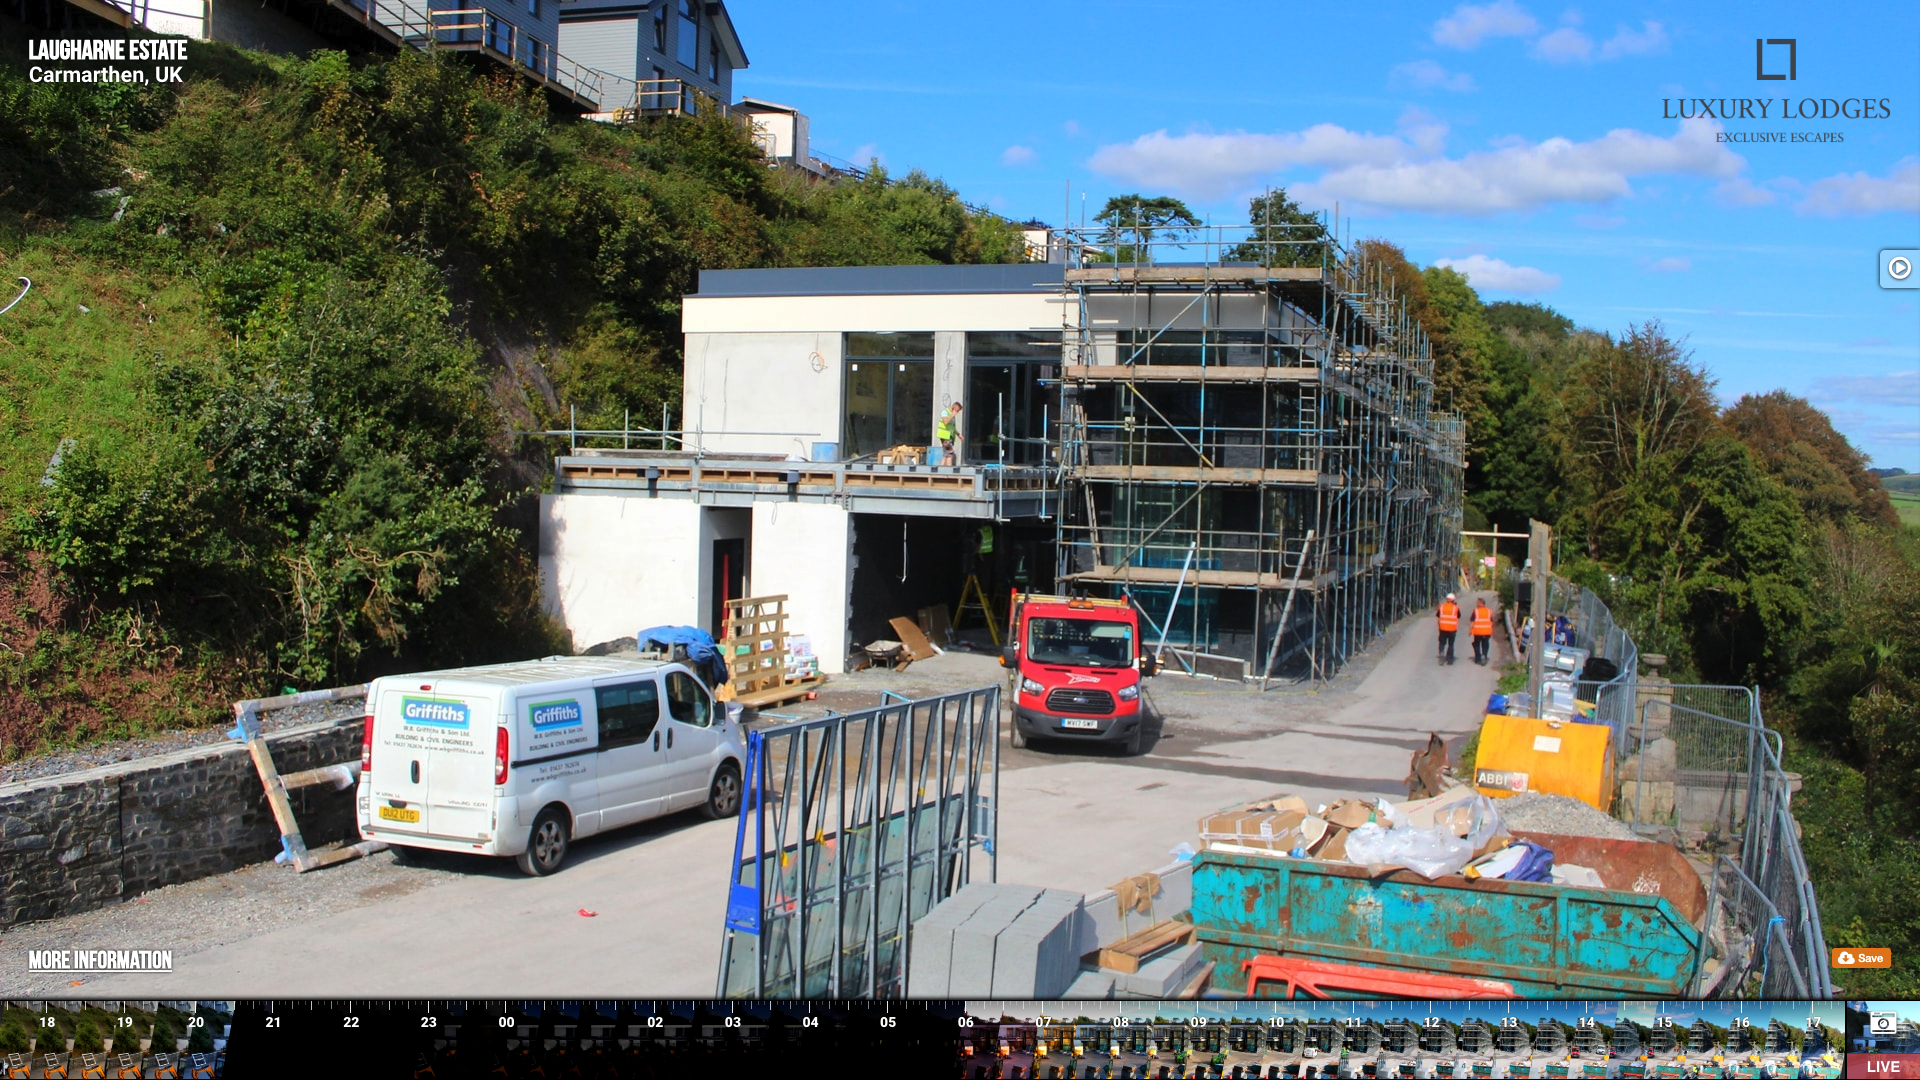 Construction site in Laugharne, Carmarthenshire